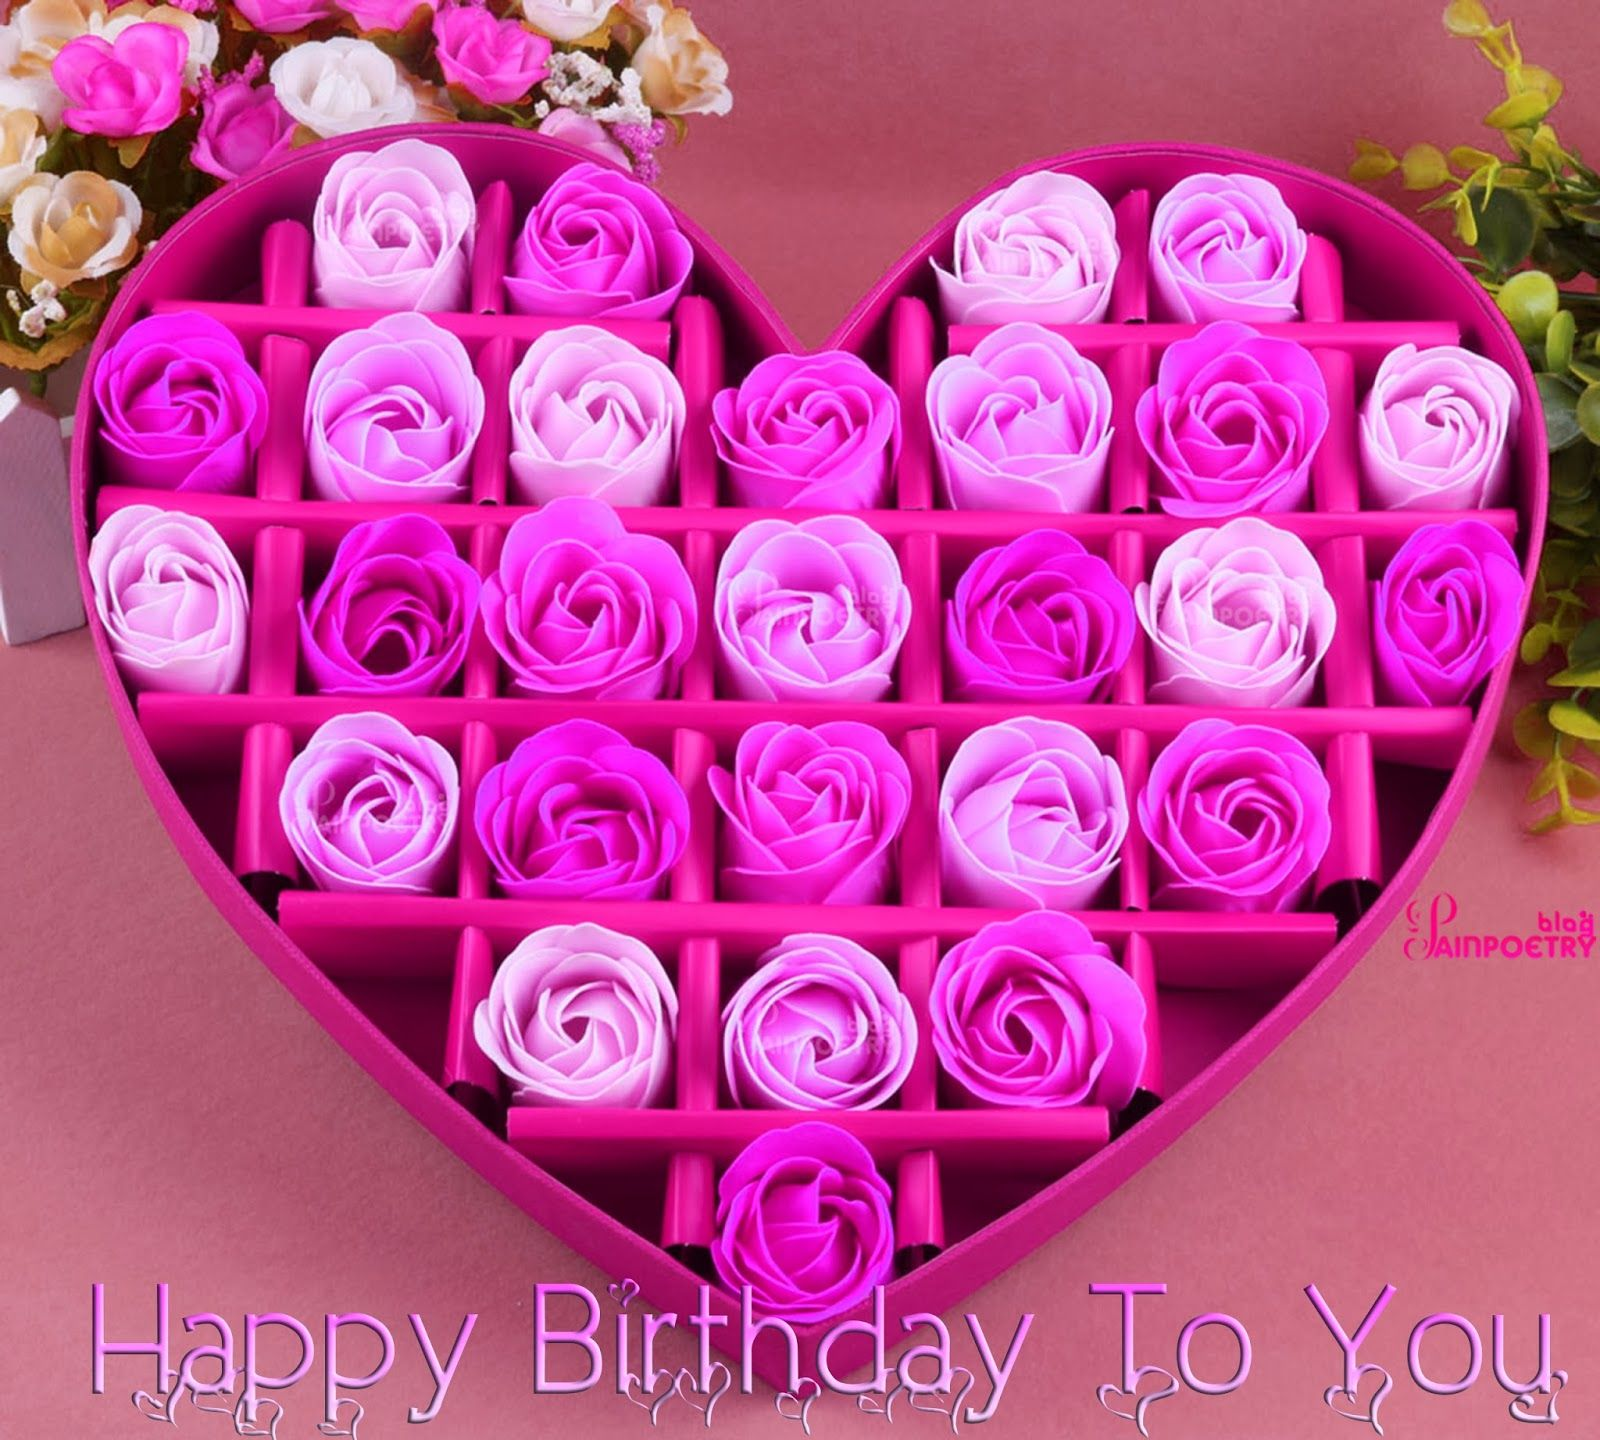 Happy Birthday Special Gift 27 Flower Fit In A Heart Image Hd Wide